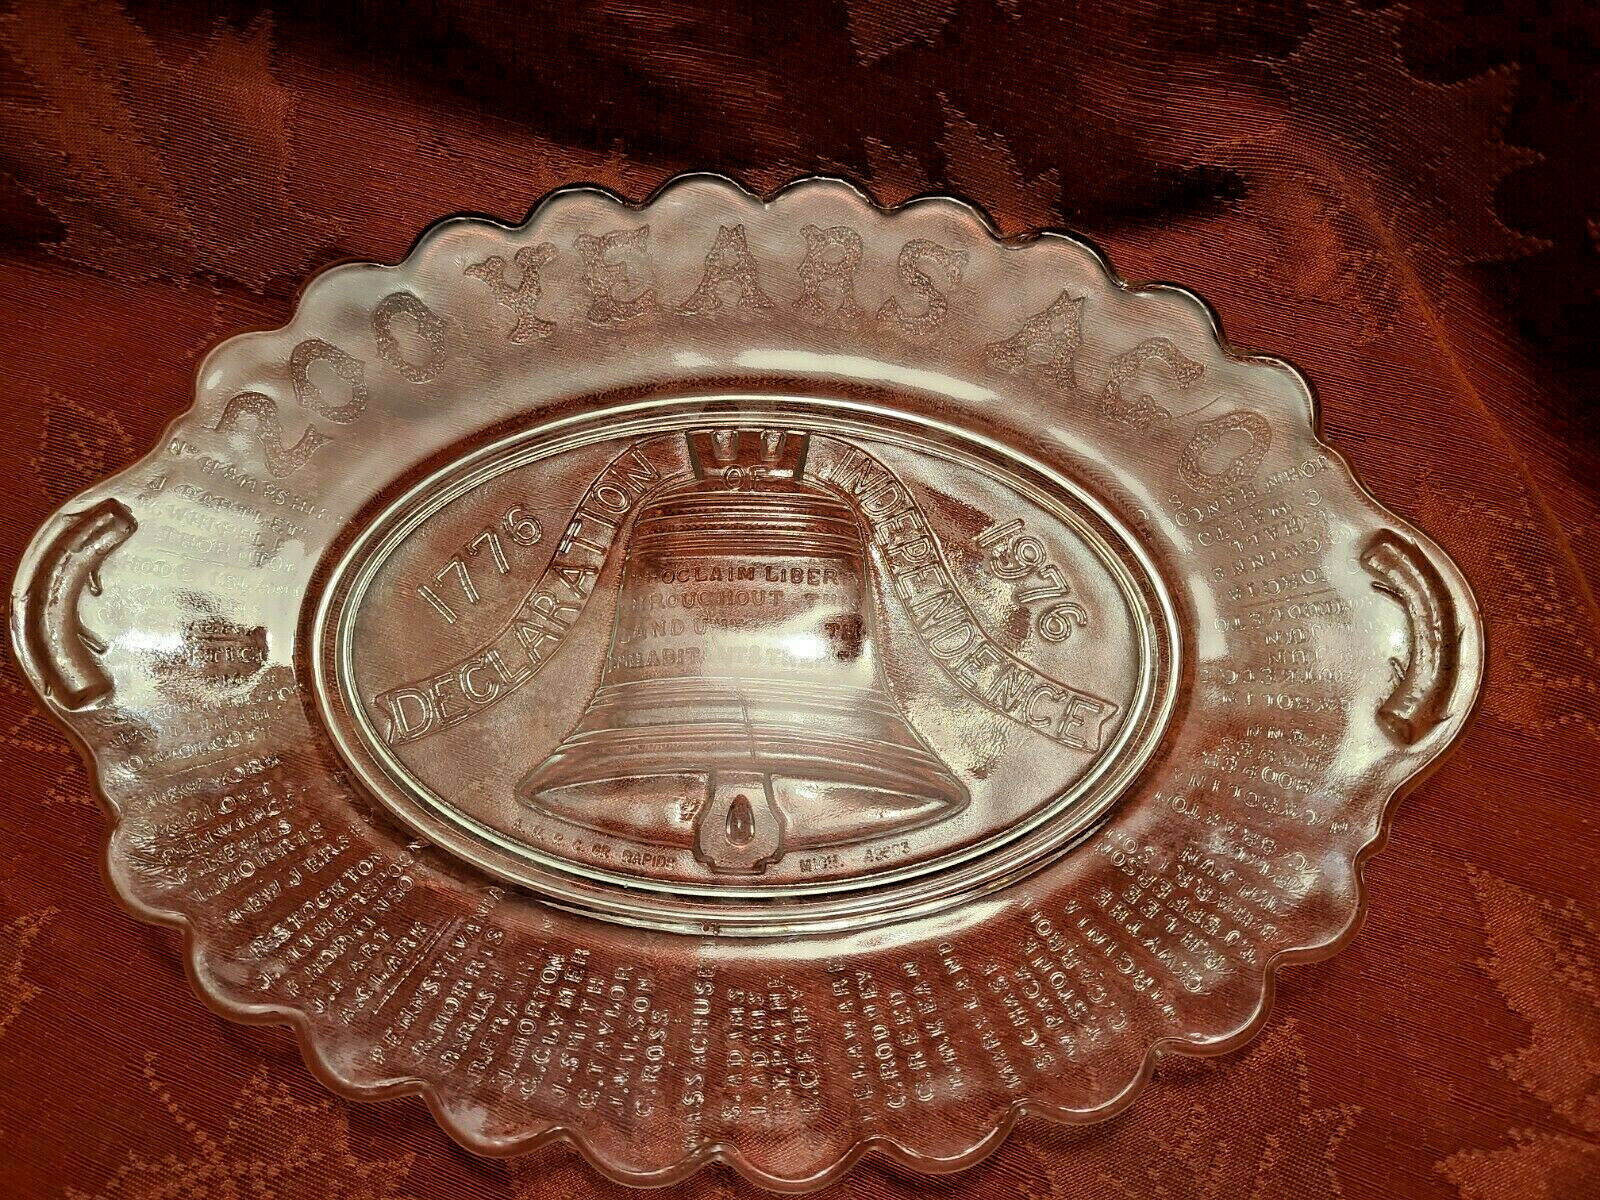 200 Years Ago Declaration Independence Pressed Glass Platter - Anchor Hocking